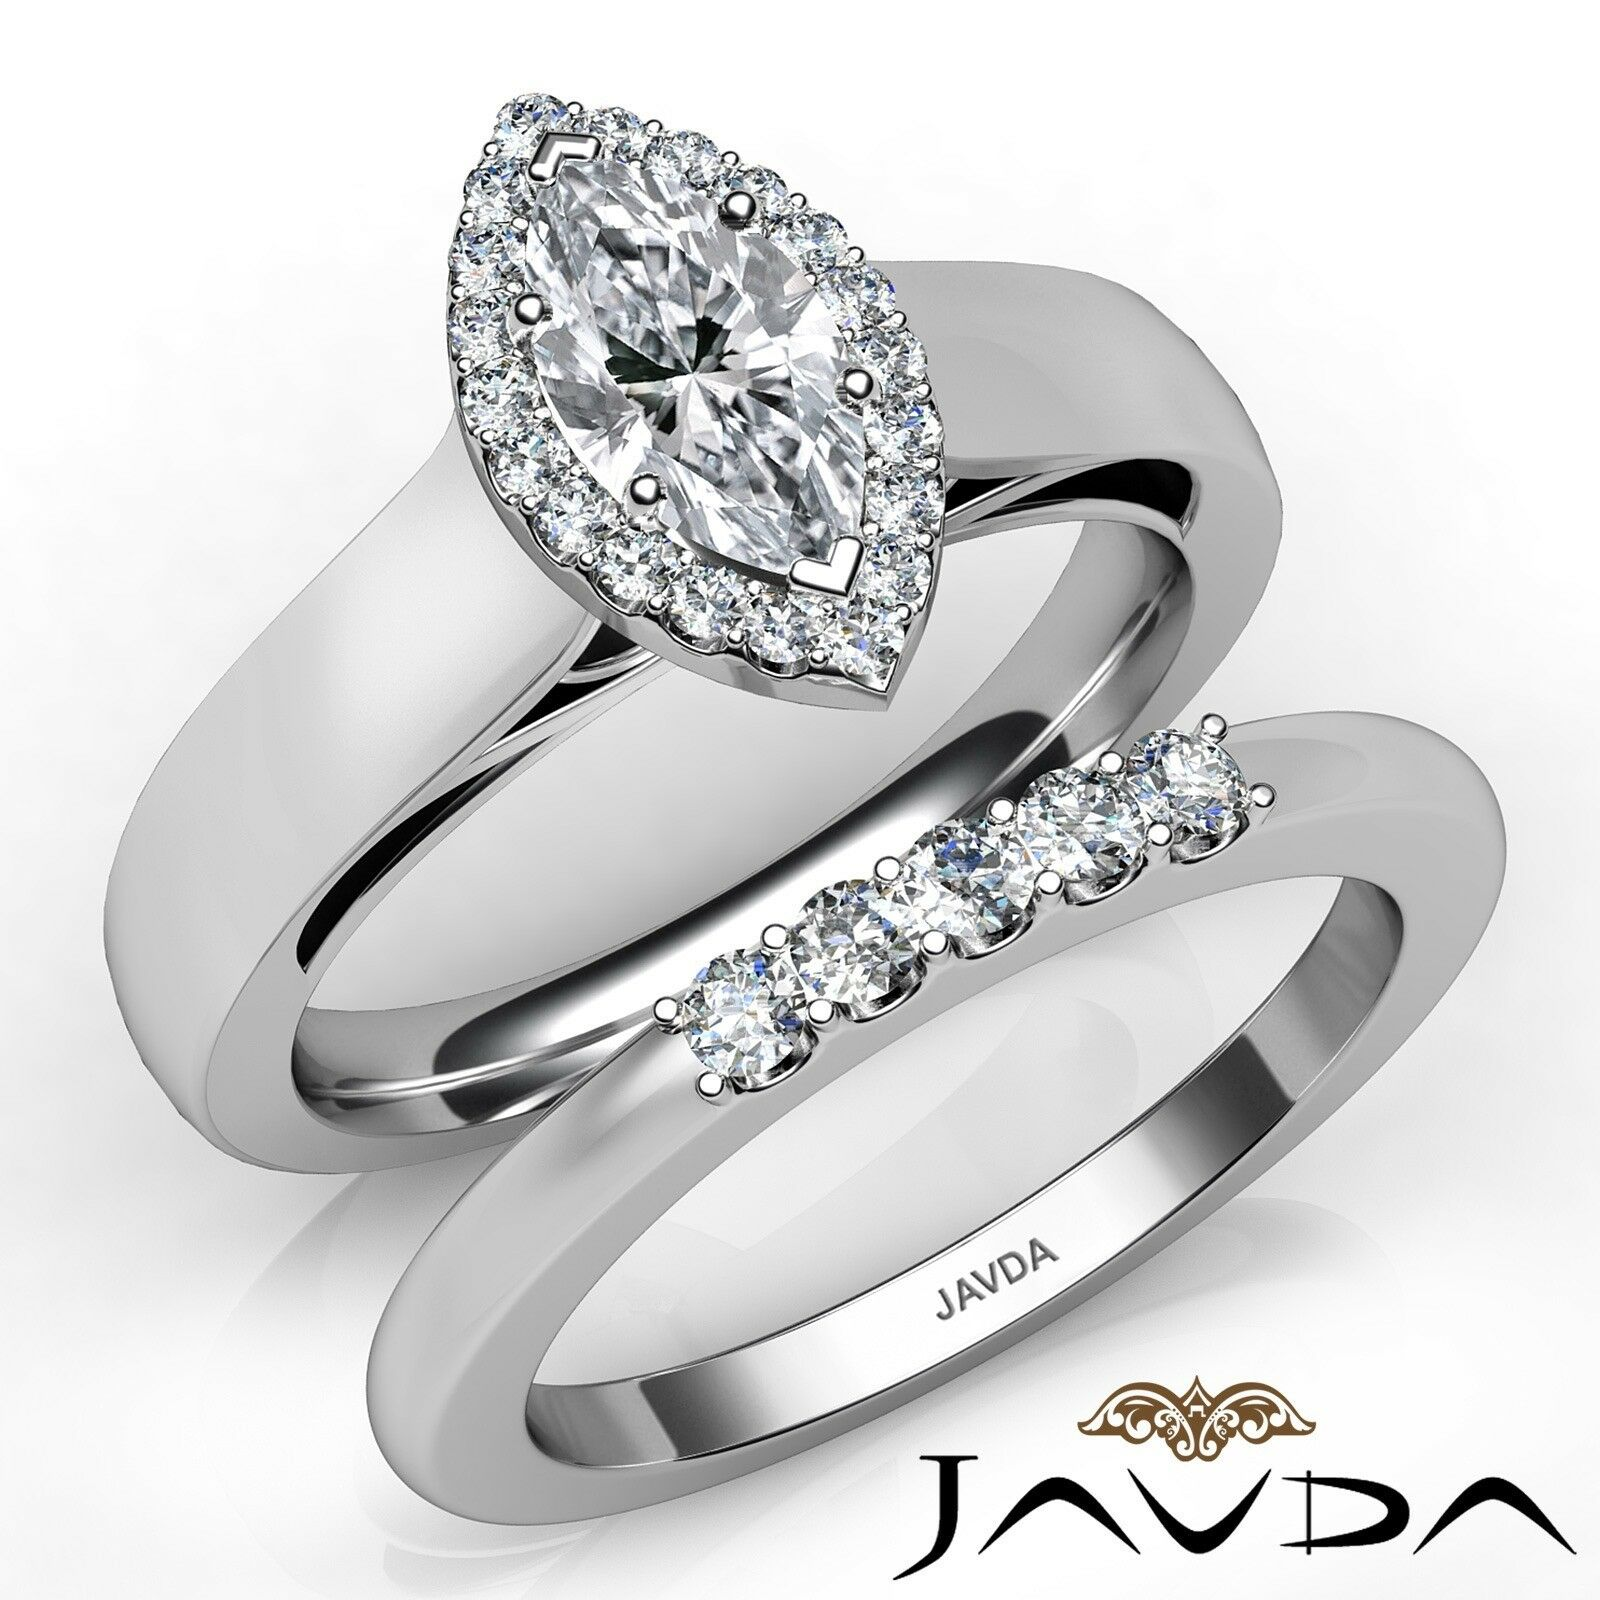 0.95ctw Cathedral Bridal Halo Marquise Diamond Engagement Ring GIA F-VS1 W Gold